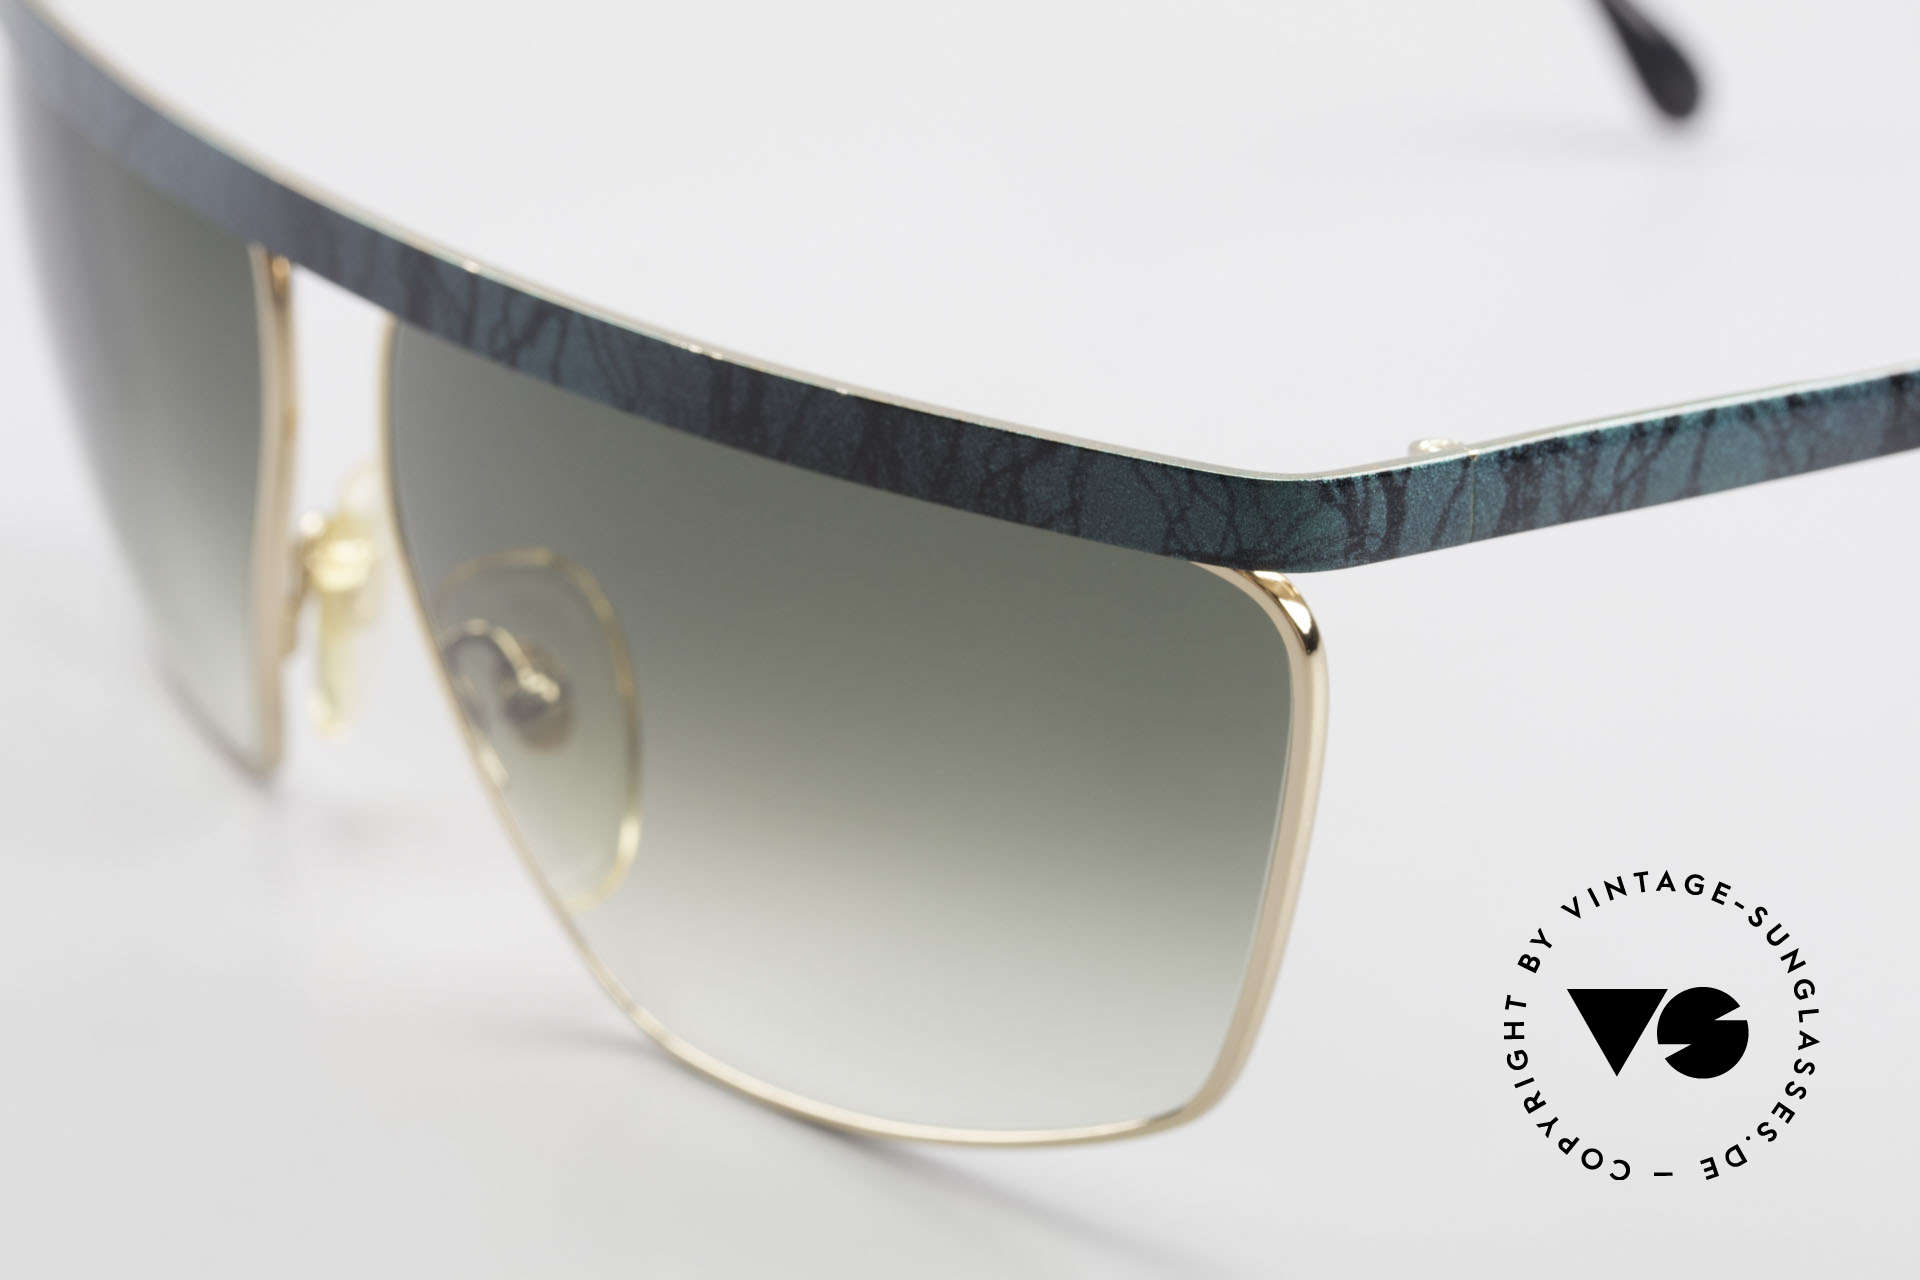 Casanova CN7 Luxury Sunglasses Gold-Plated, unworn (like all our rare sunglasses from the 80's), Made for Men and Women